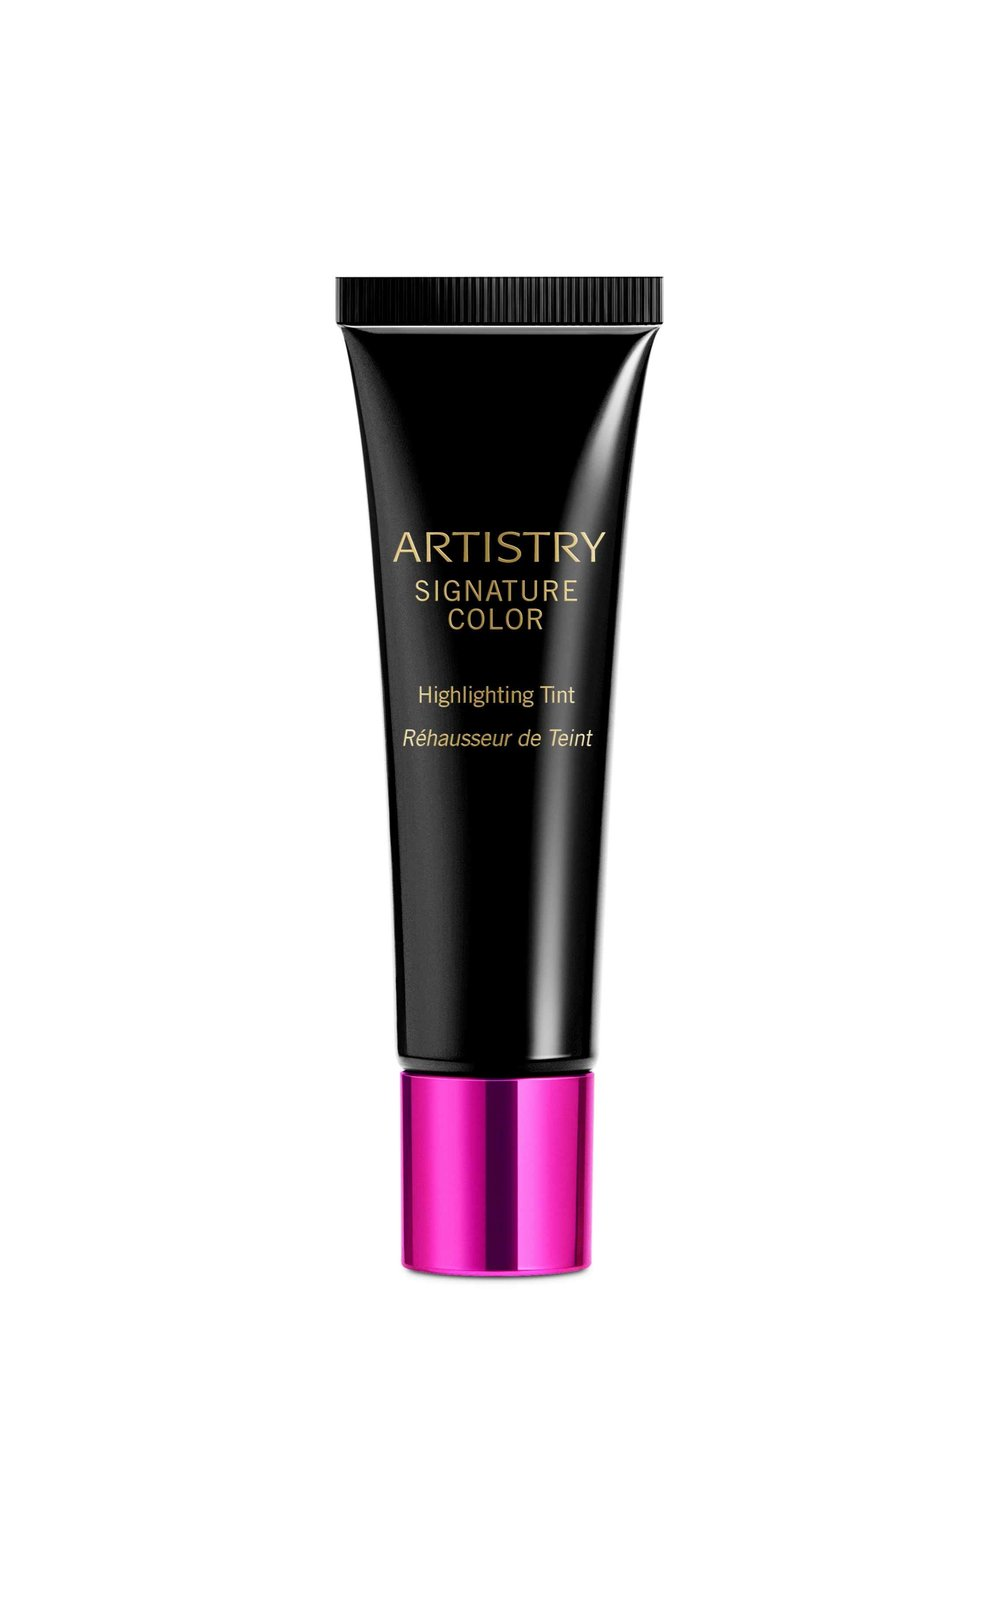 Signature Color Highlighting Tint